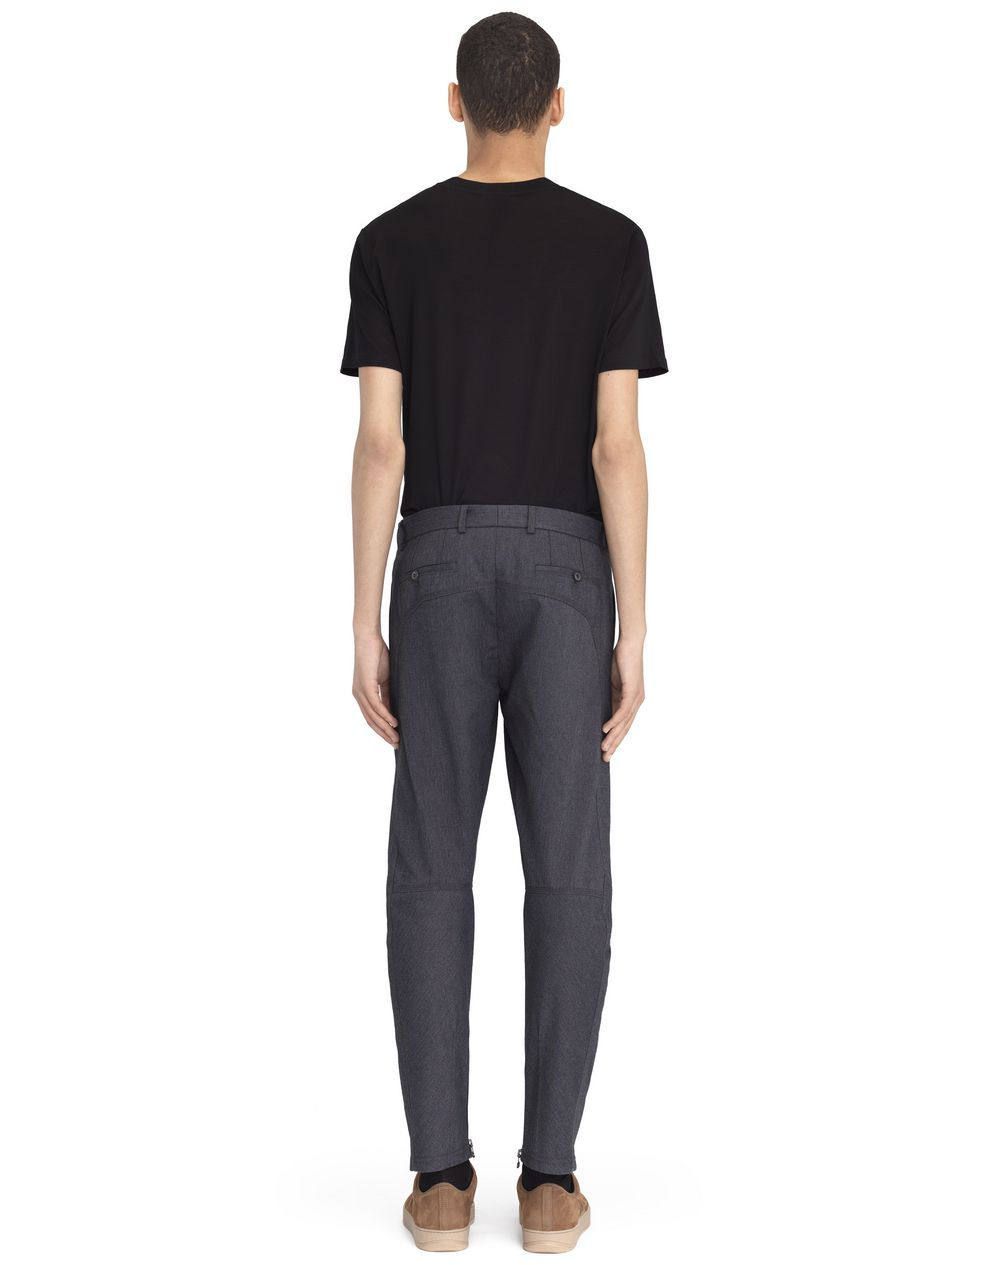 ANTHRACITE BIKER PANTS - Lanvin